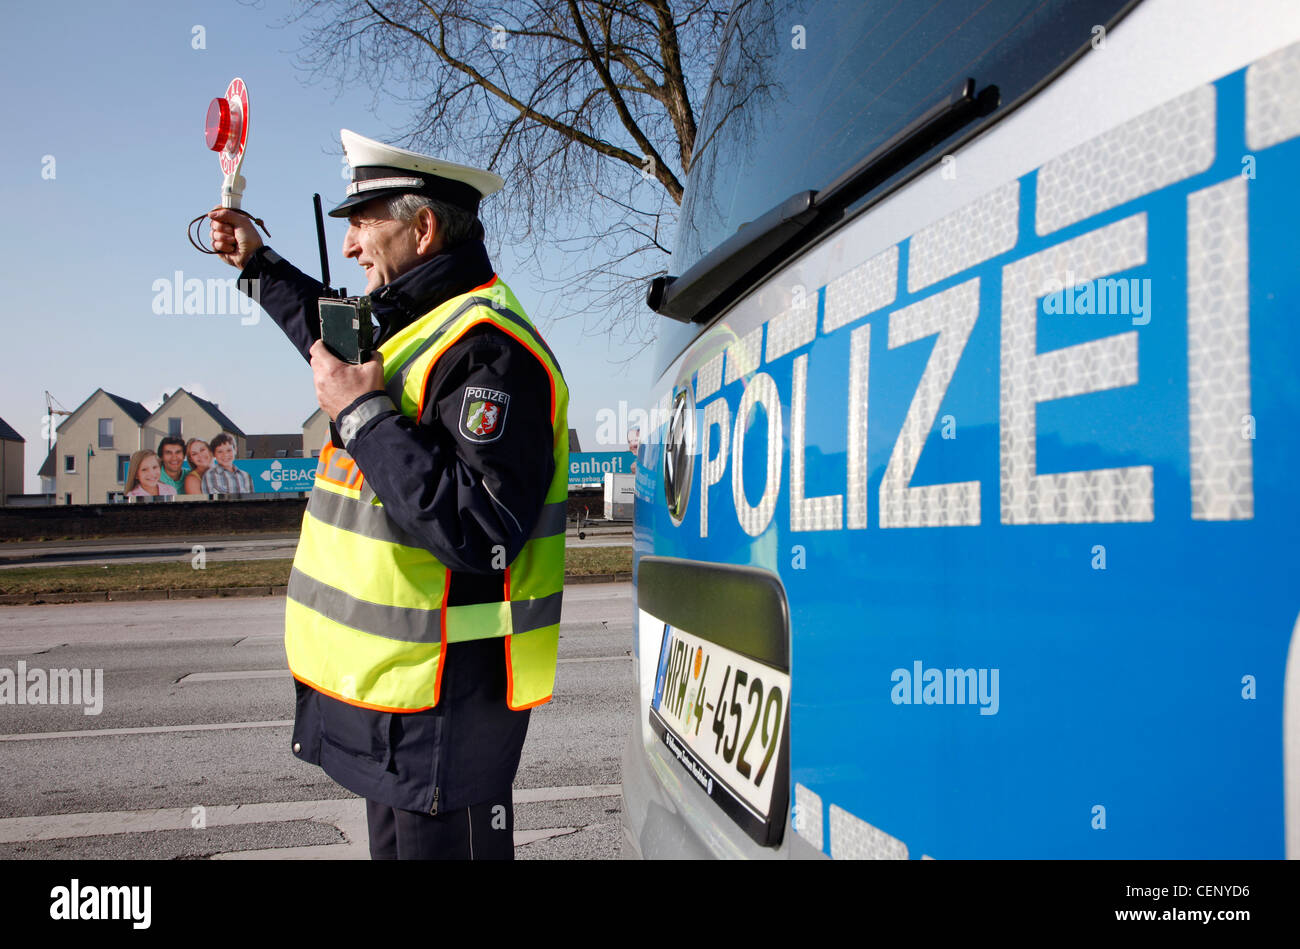 Police control, traffic speed control, police officer stops cars on a street. - Stock Image